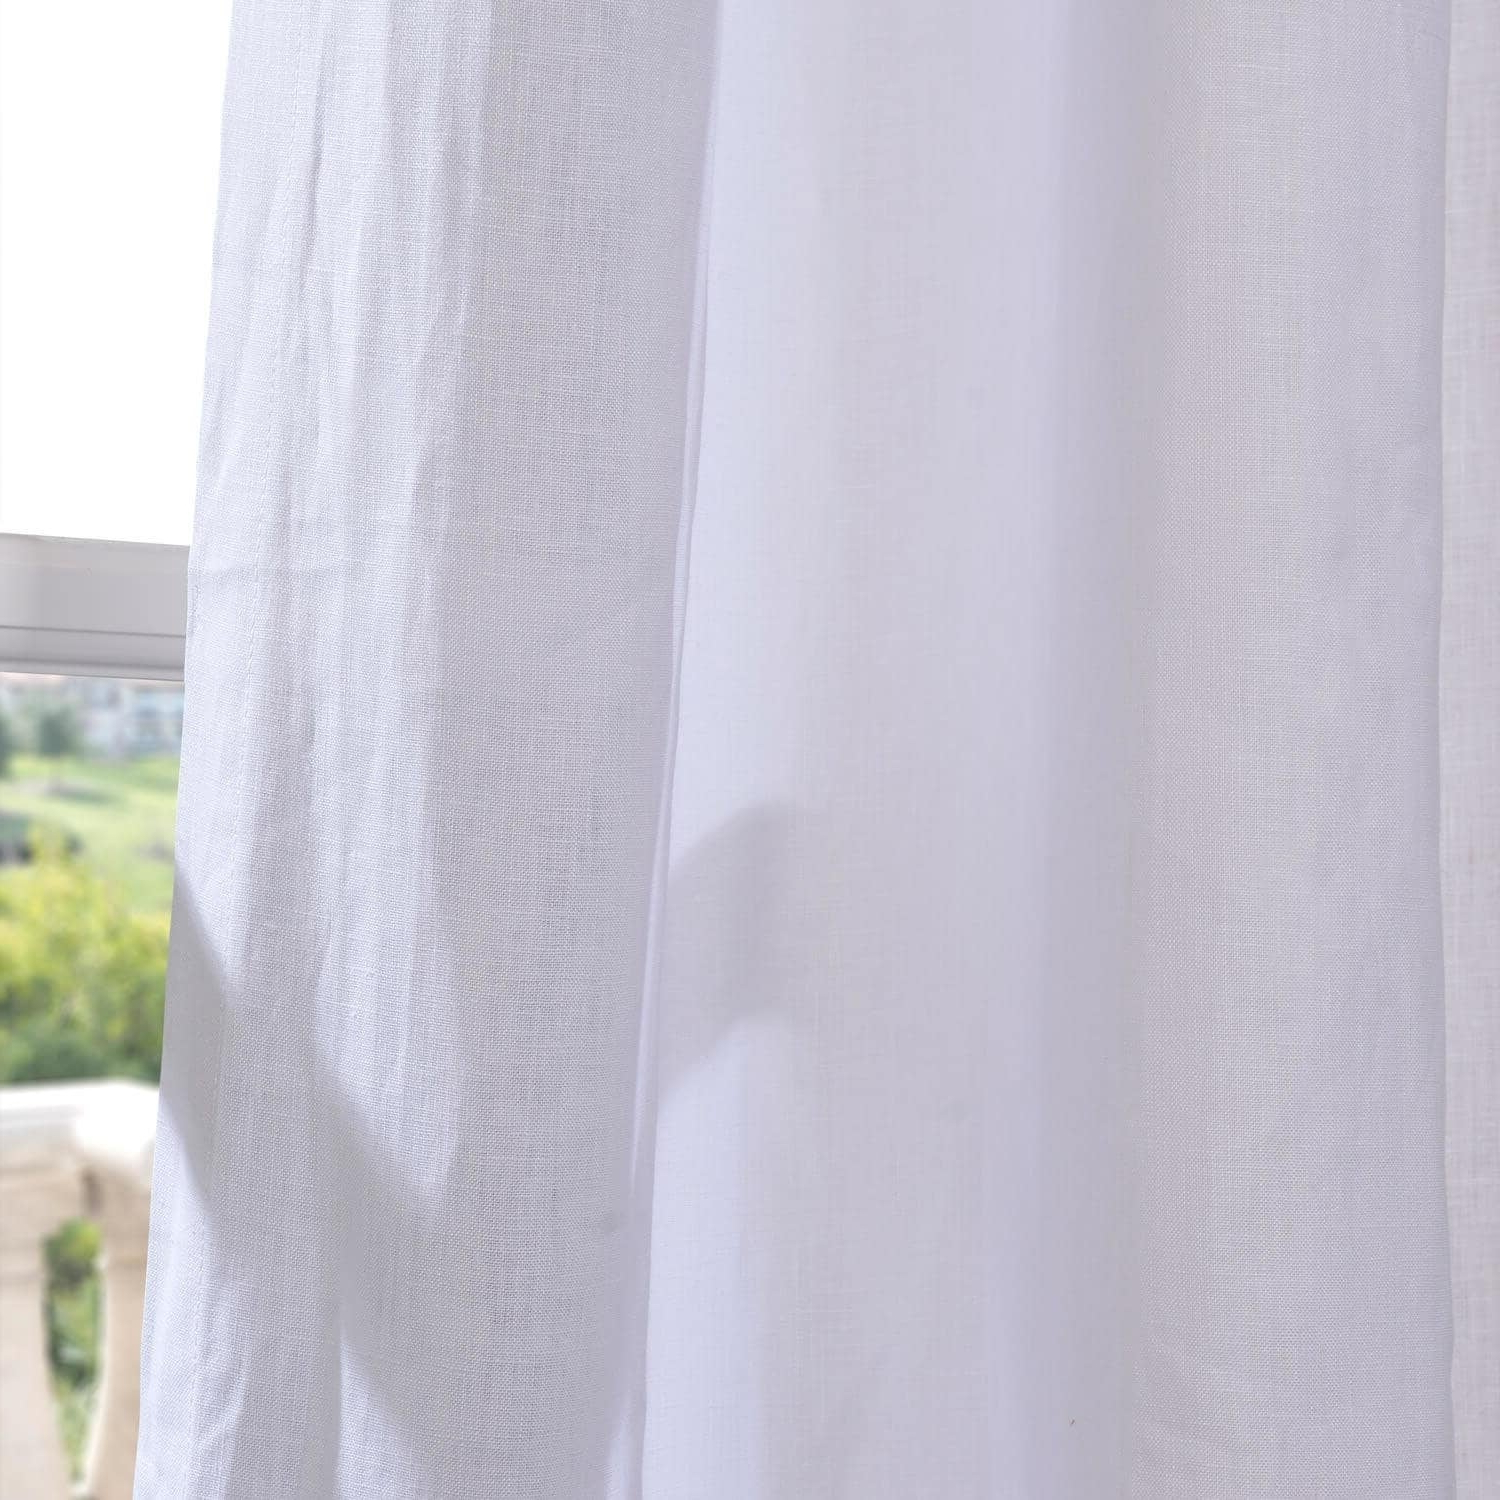 Newest Signature French Linen Curtain Panels Within Exclusive Fabrics Signature French Linen Curtain Panel (View 14 of 20)